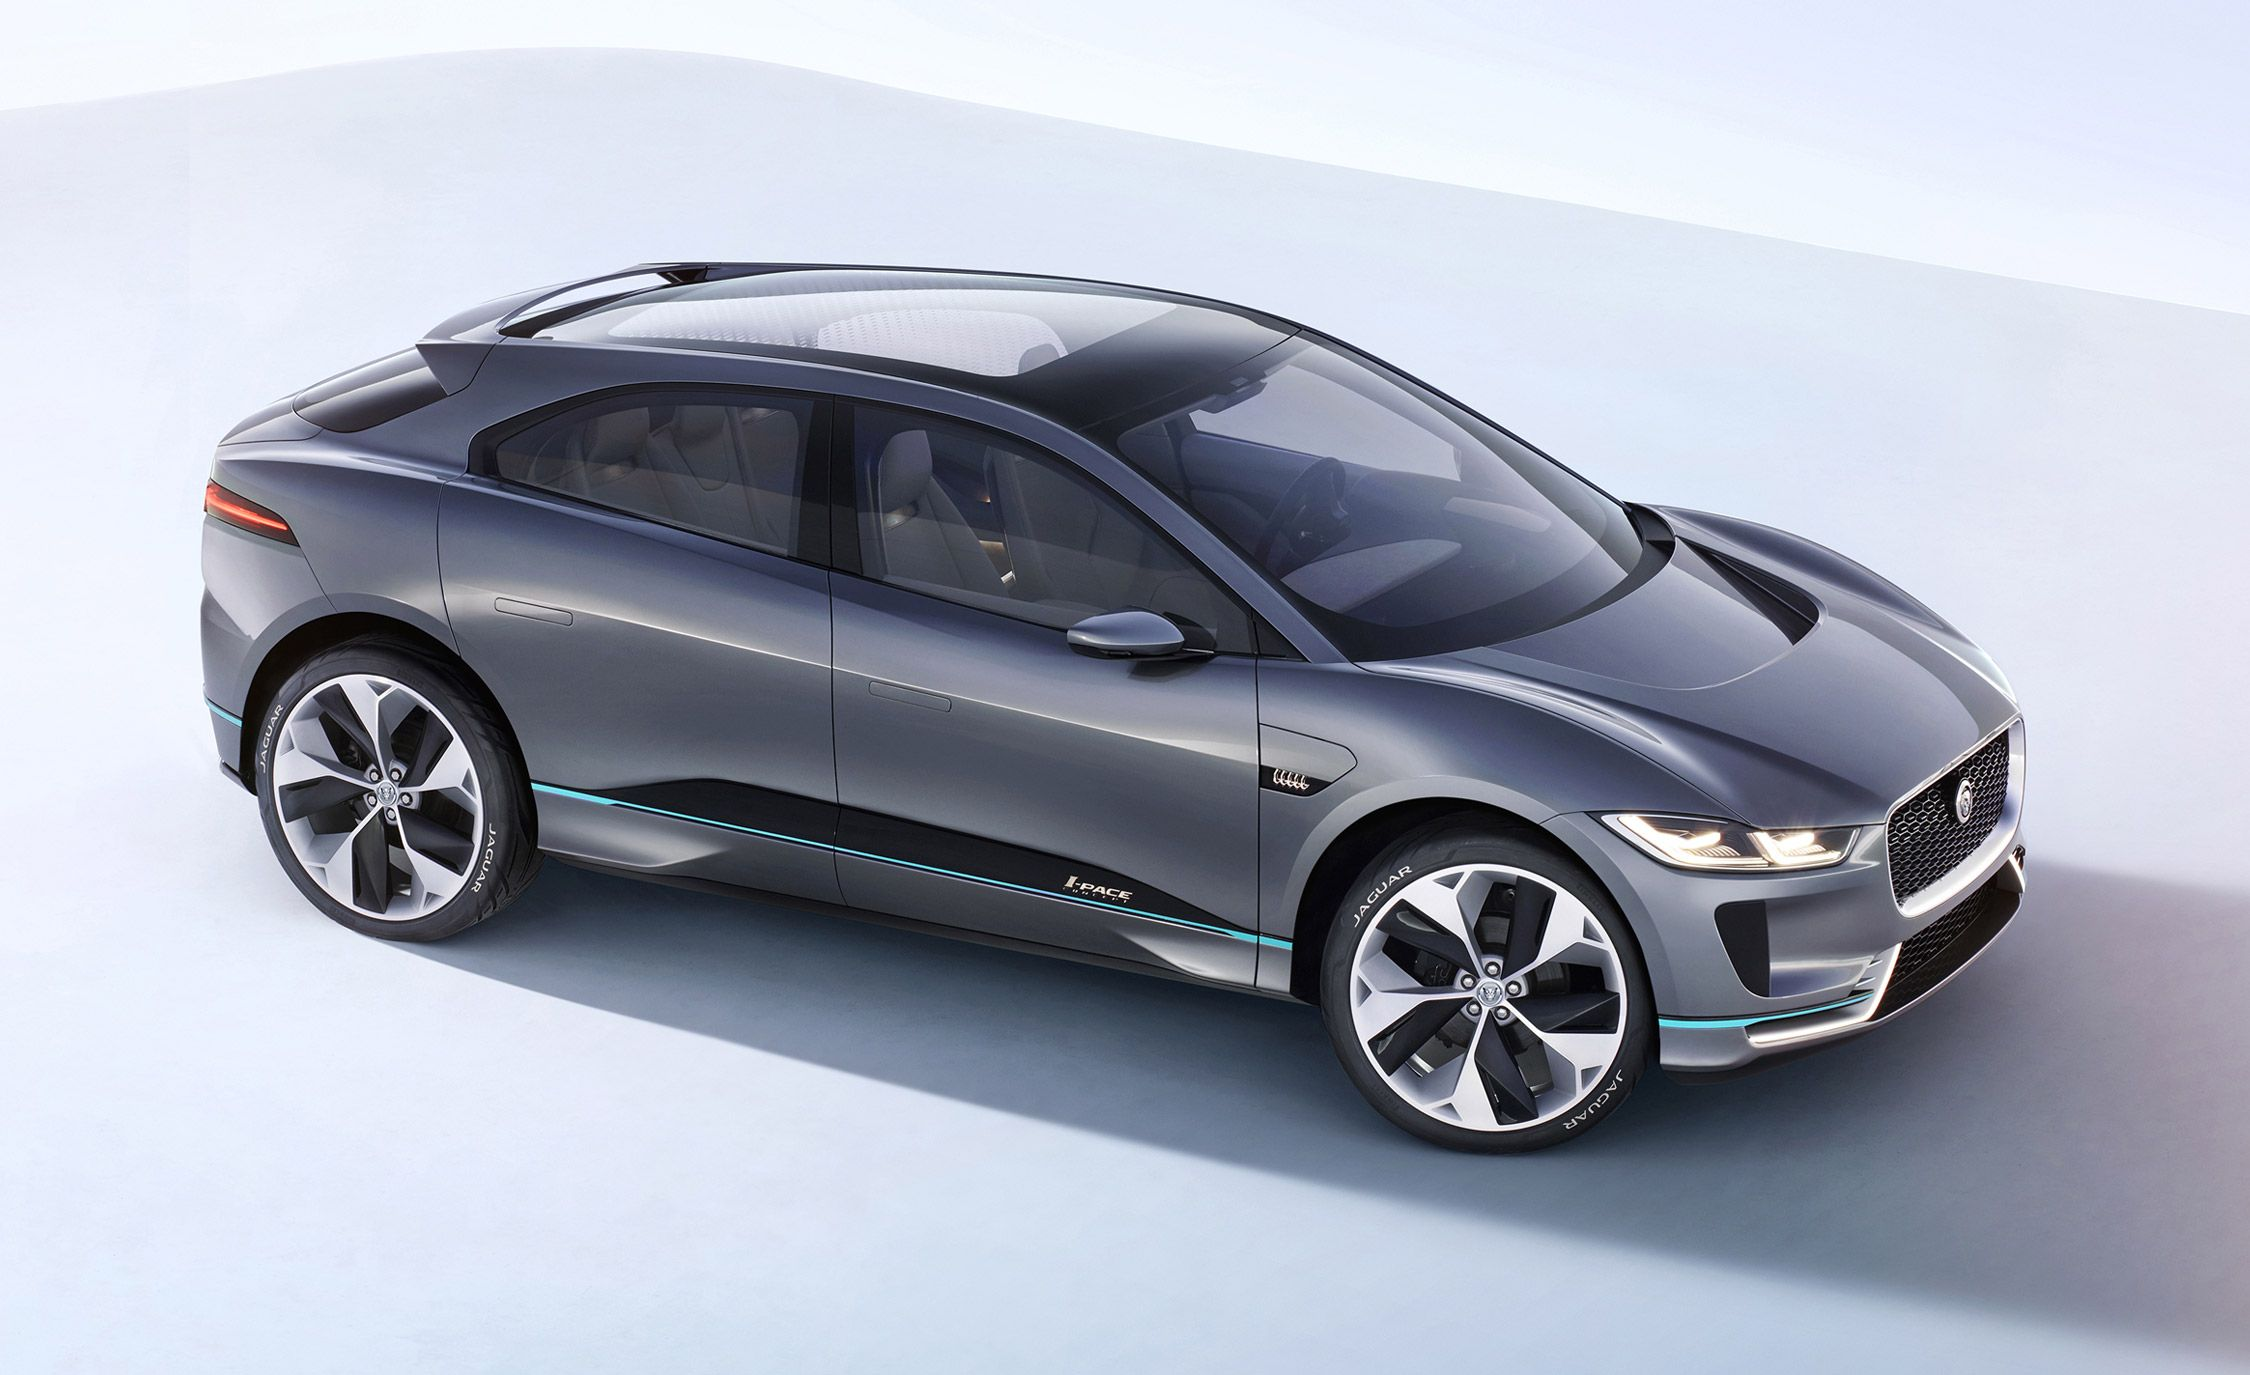 2018 Jaguar I-Pace: A Gorgeous, All-Electric Crossover Headed to a Dealer Near You